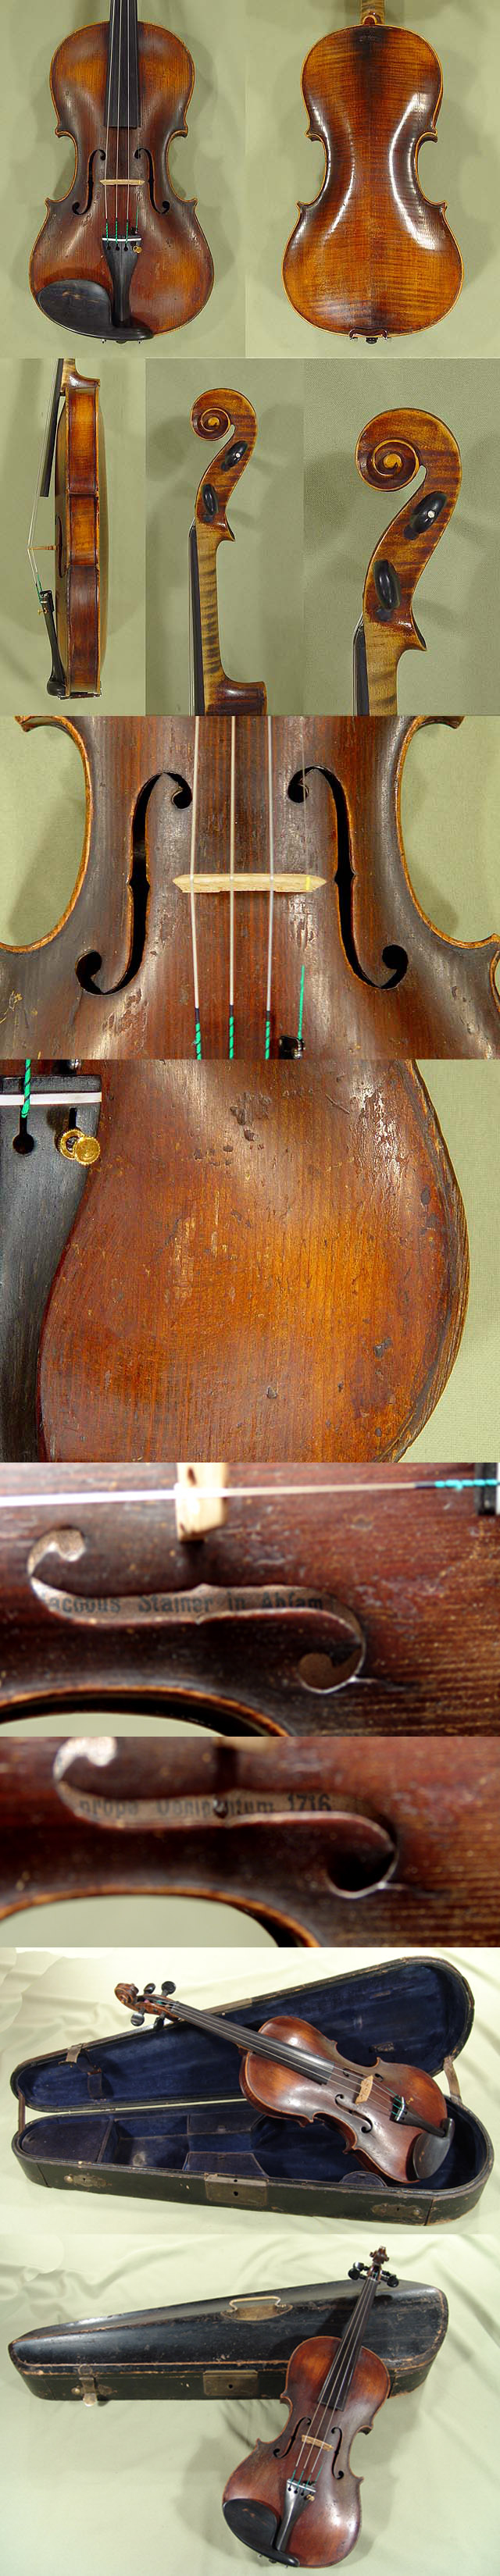 4/4 STAINER - 292 years old Violin 'Jacobus Stainer 1716' Model